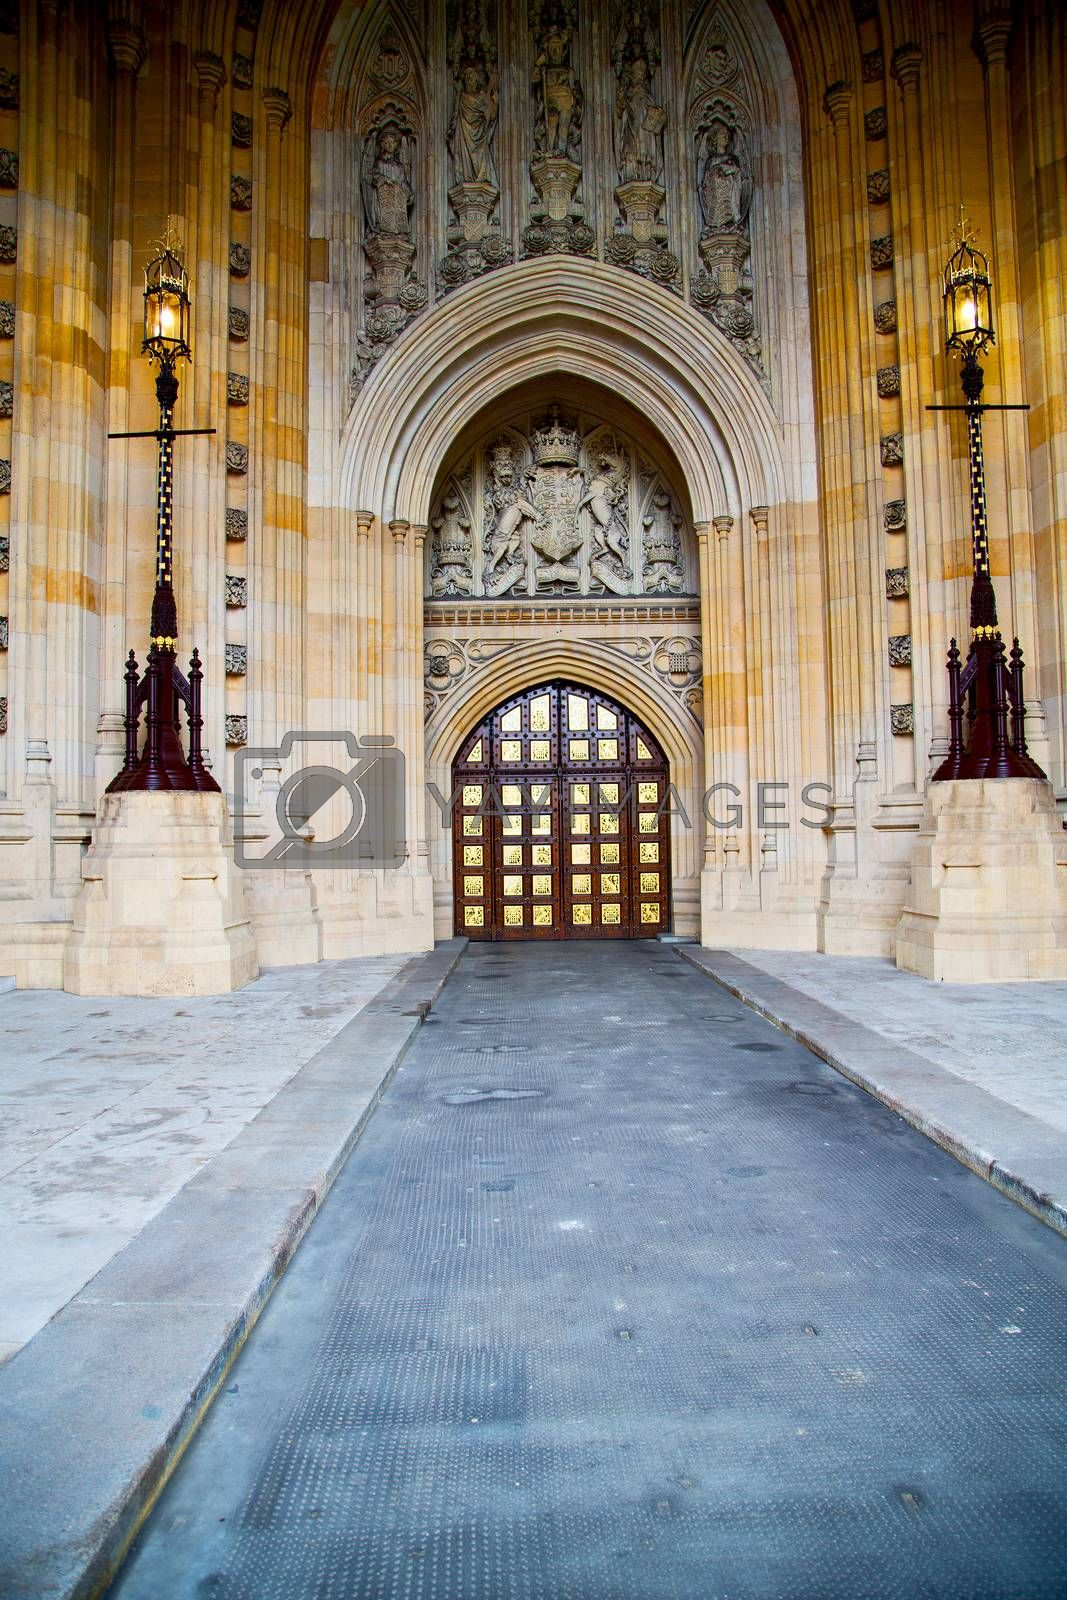 parliament in london  church  marble antique  wall by lkpro